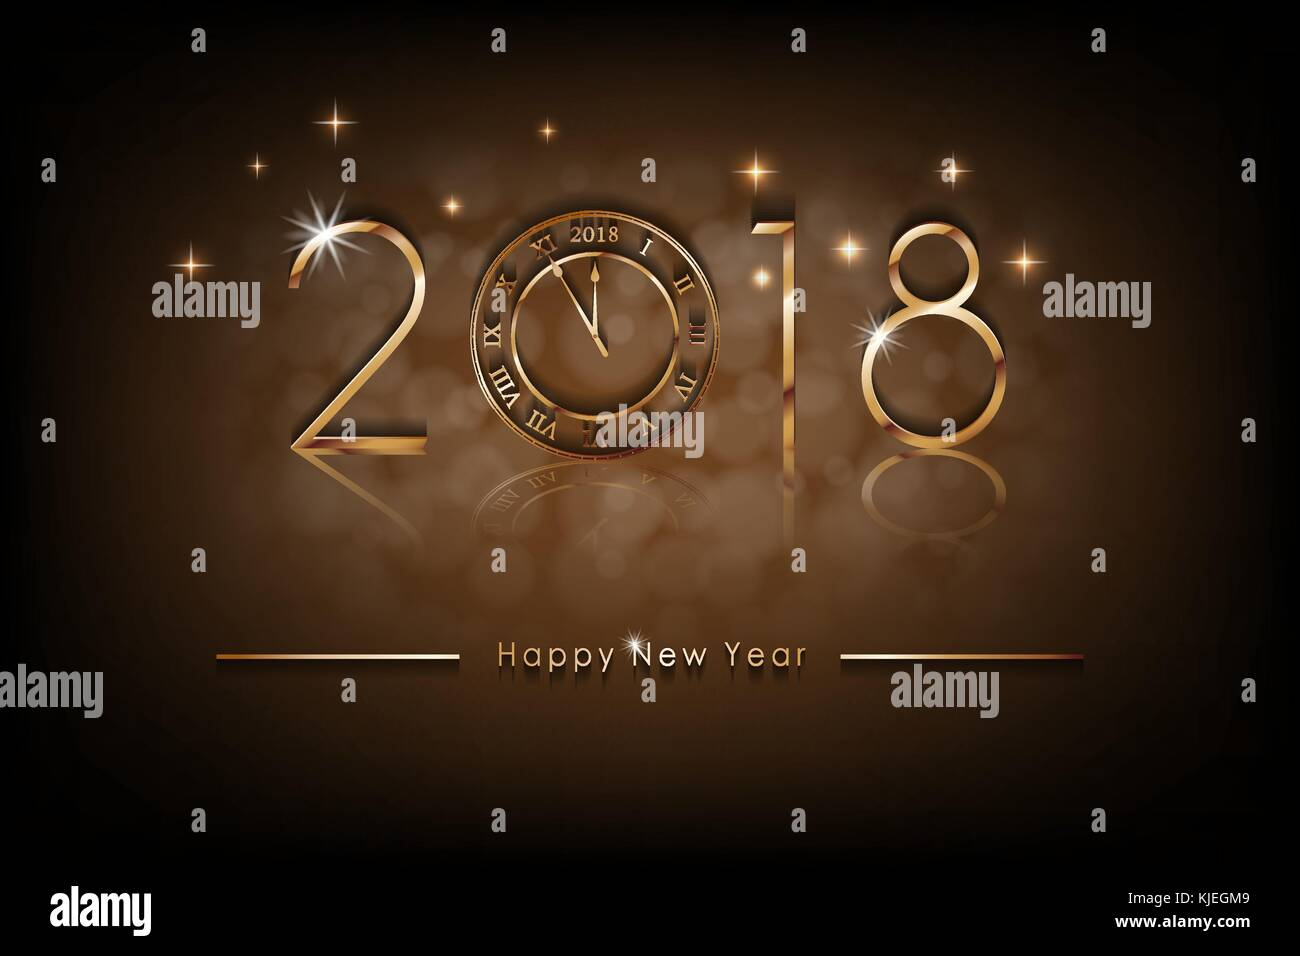 happy new 2018 year illustration greetings new year background banner with gold clock colorful bronze winter background vector